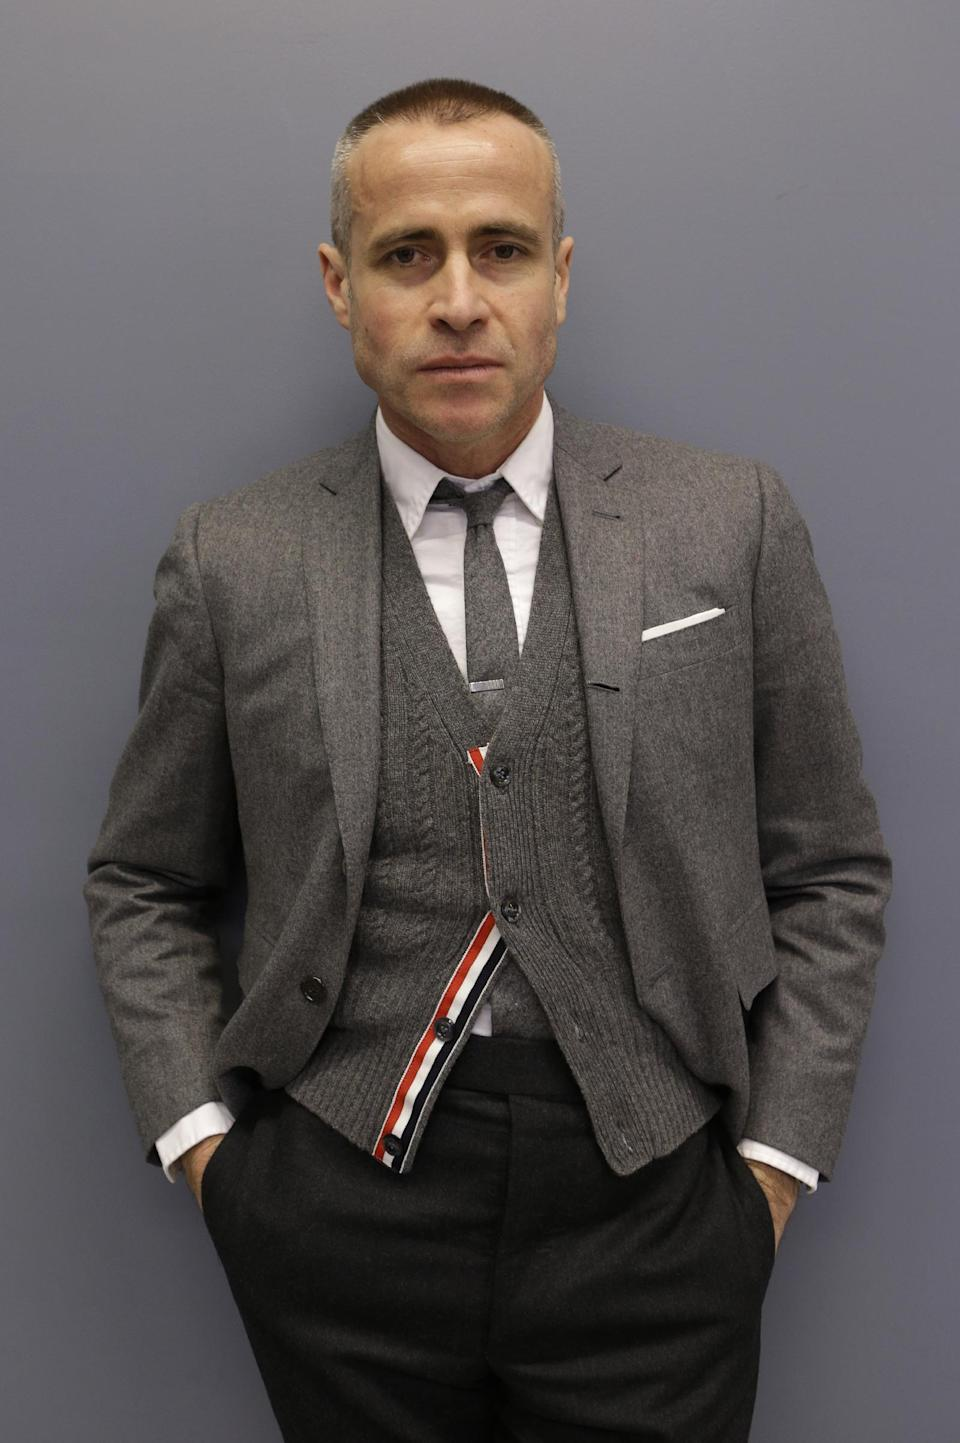 Fashion designer Thom Browne poses for a photograph at his Hudson Street store in New York, Wednesday, Feb. 20, 2013. Browne is building a business _ and what he hopes is a smart, long-lasting business at that. He's just not the overzealous, mercurial artiste. (AP Photo/Kathy Willens)